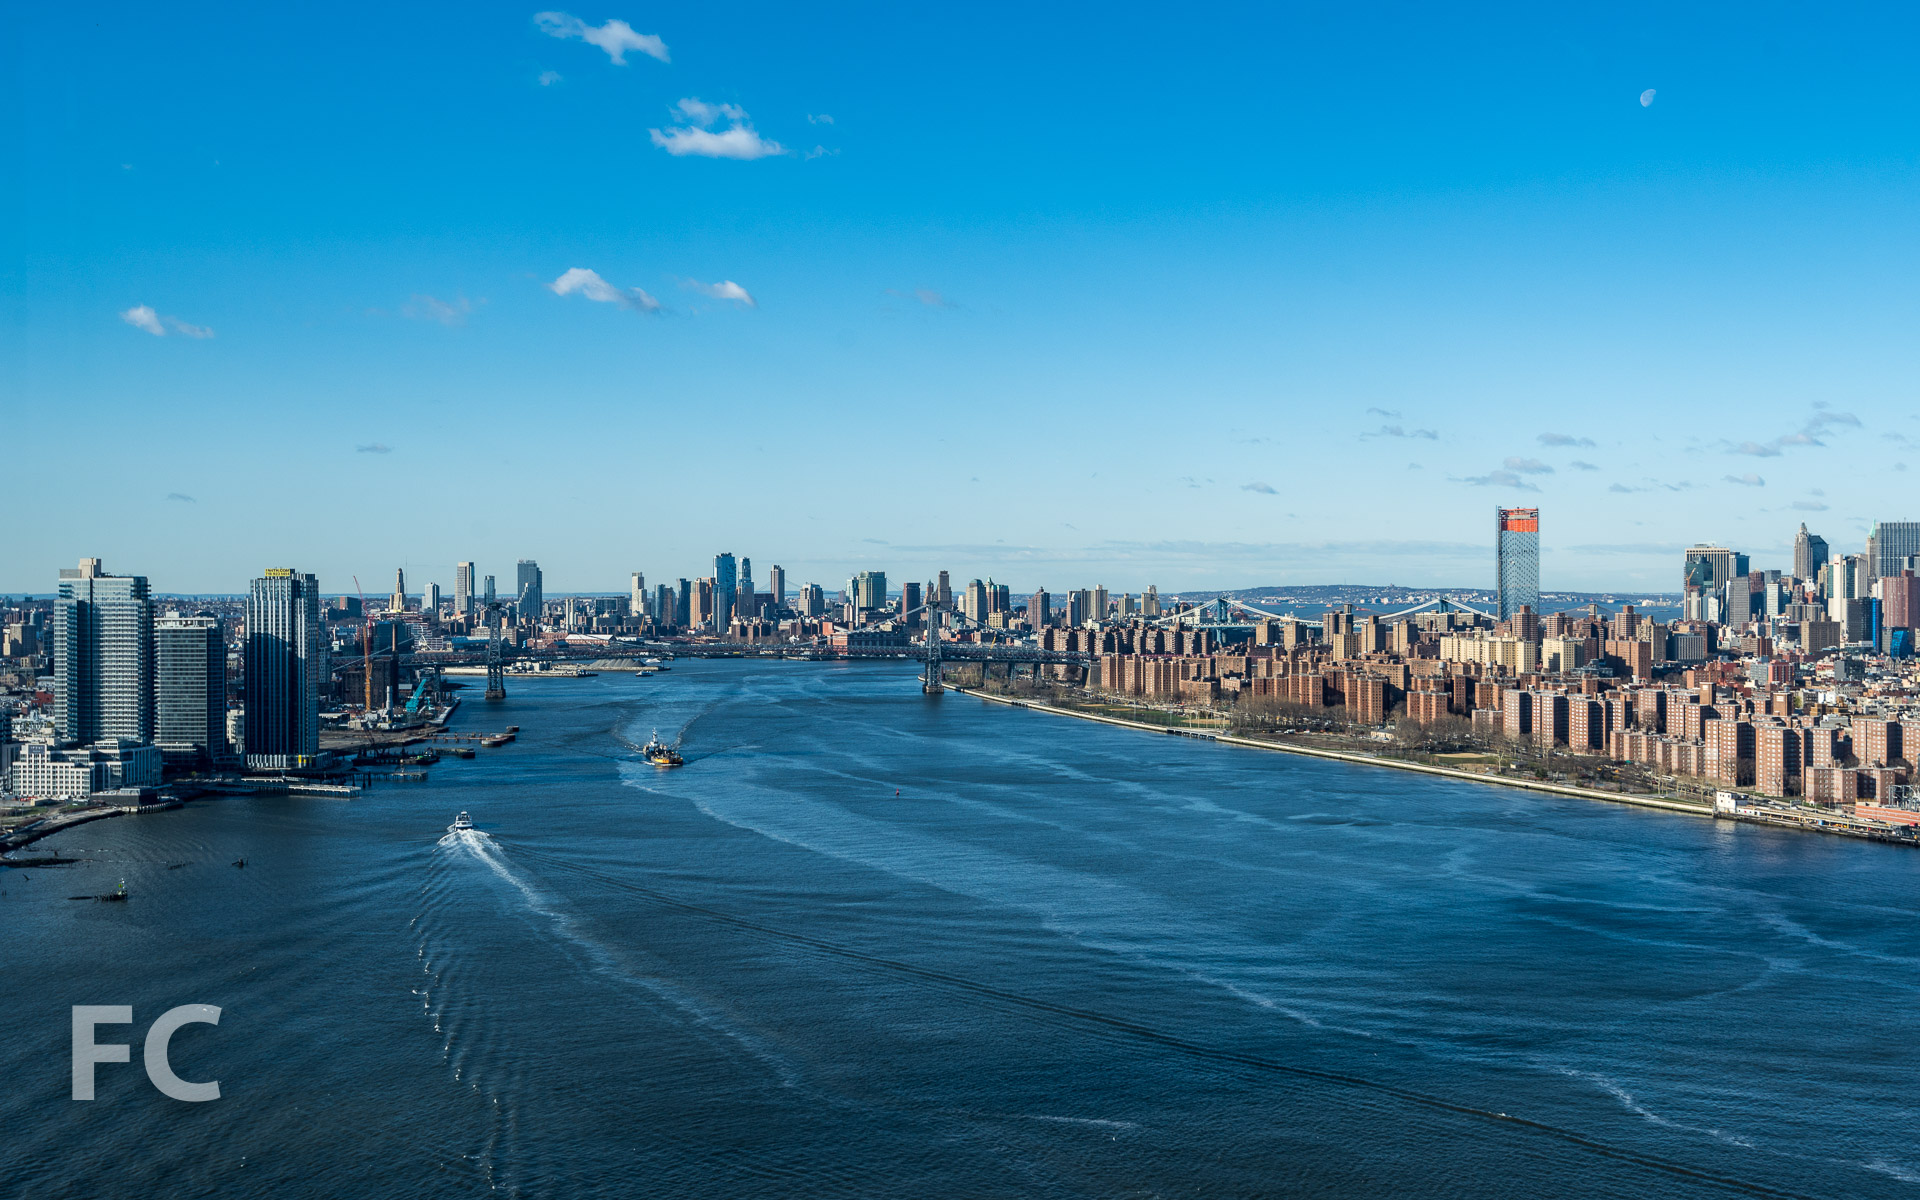 View south towards Brooklyn (left) and Lower Manhattan (right) from the rooftop.